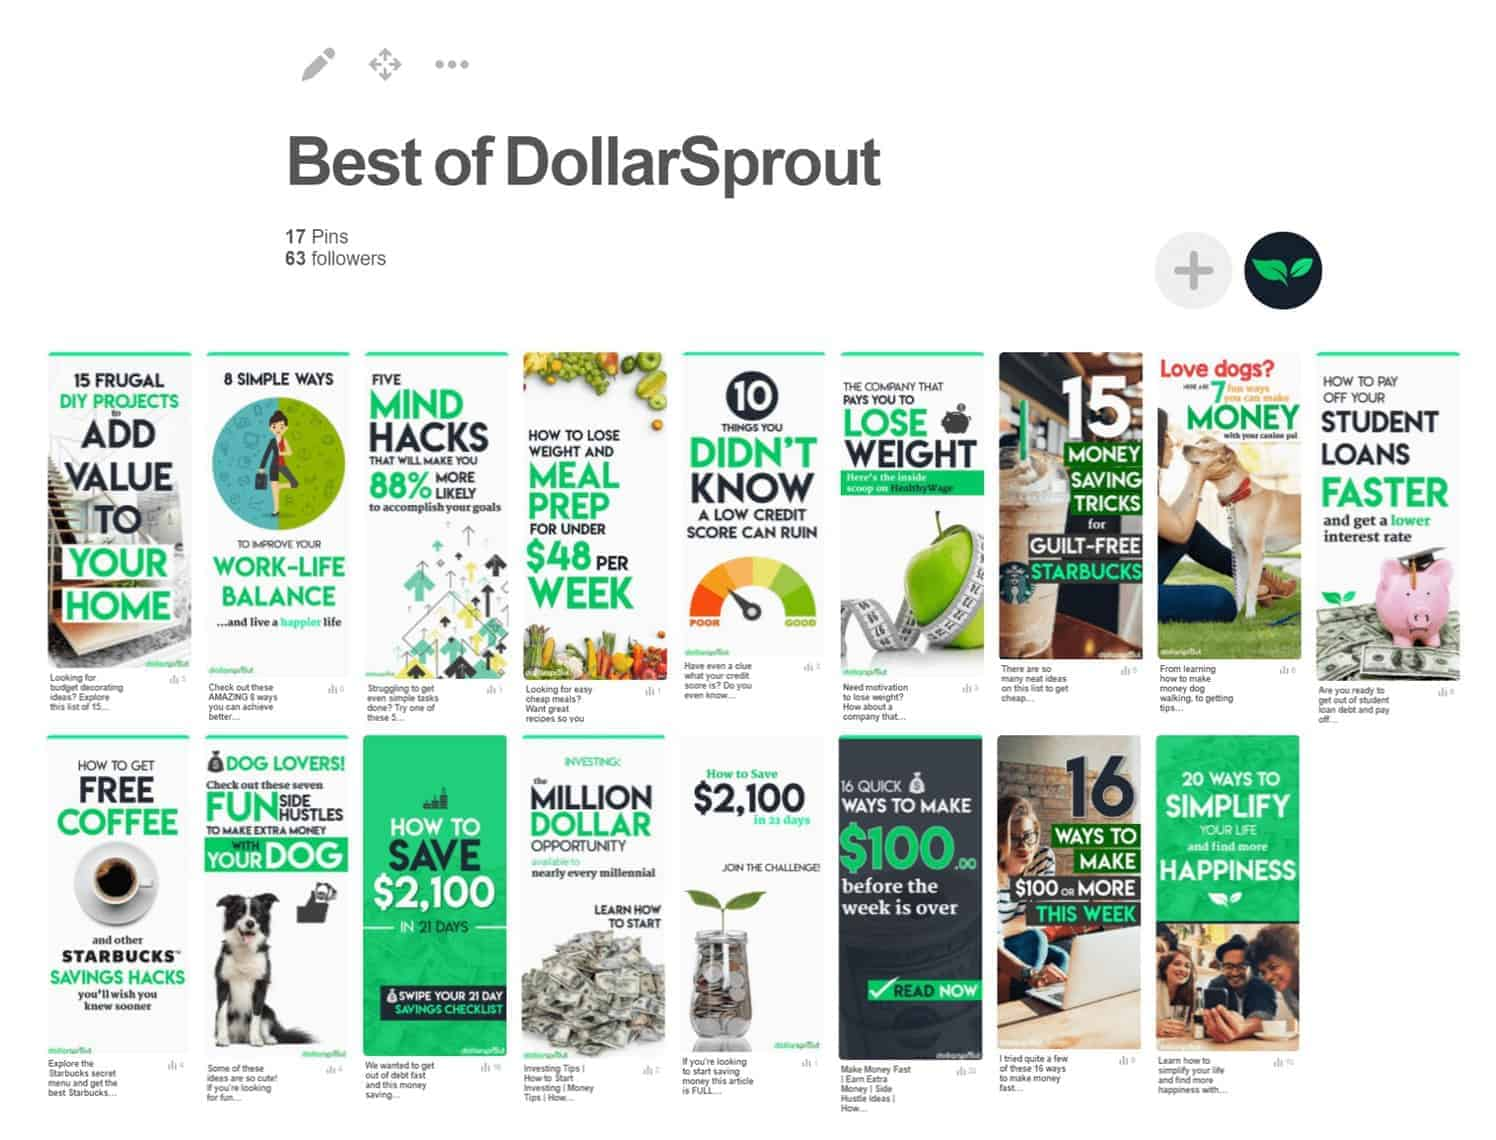 Branded DollarSprout Pinterest Board